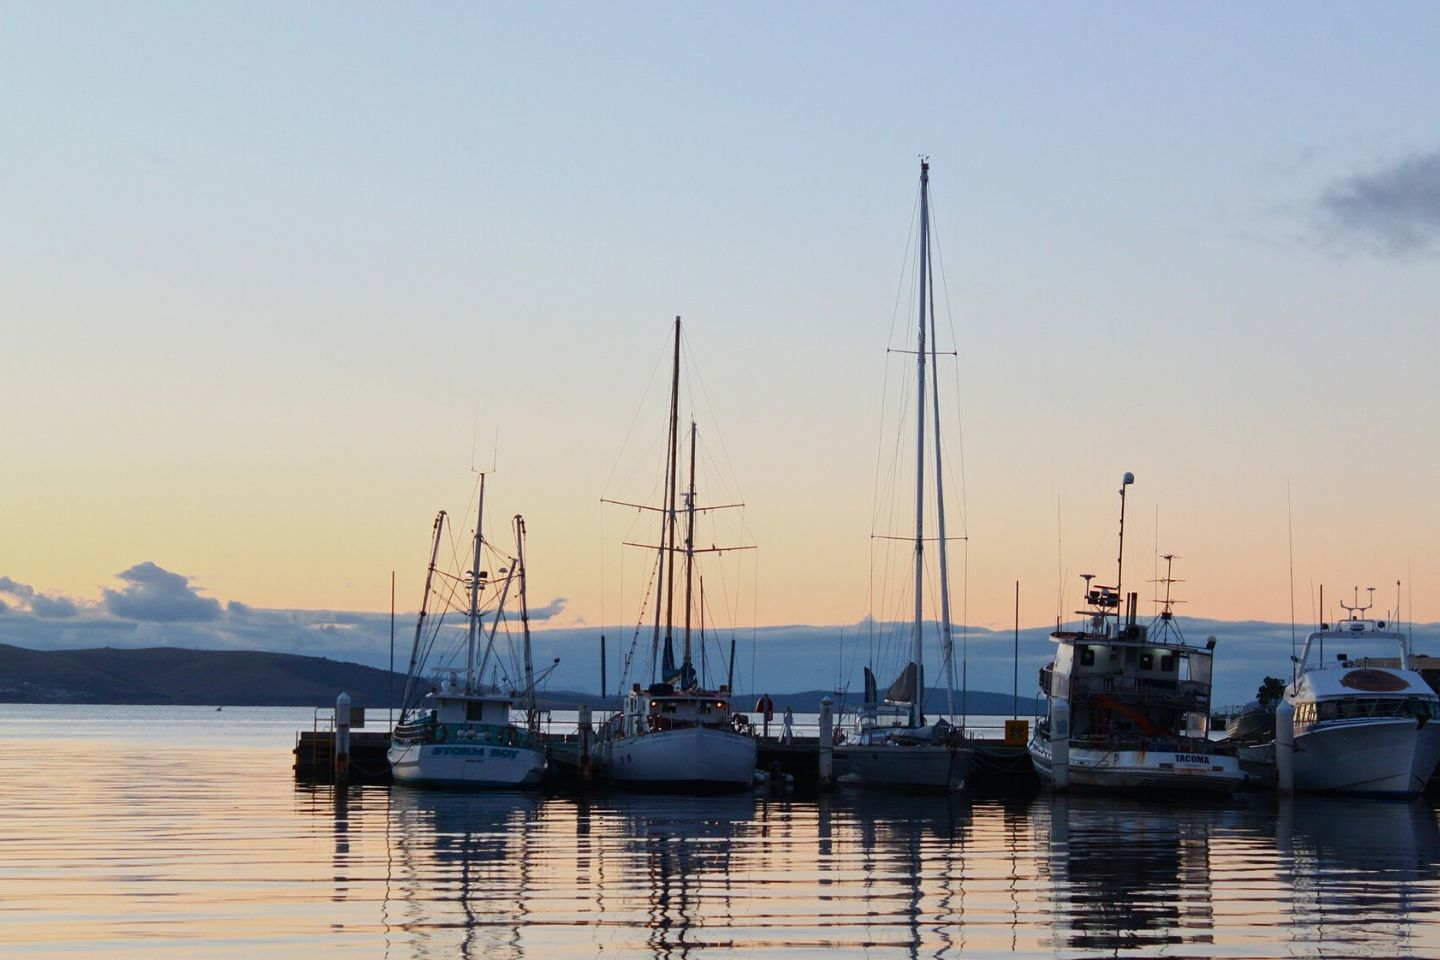 hobart harbour at sunset